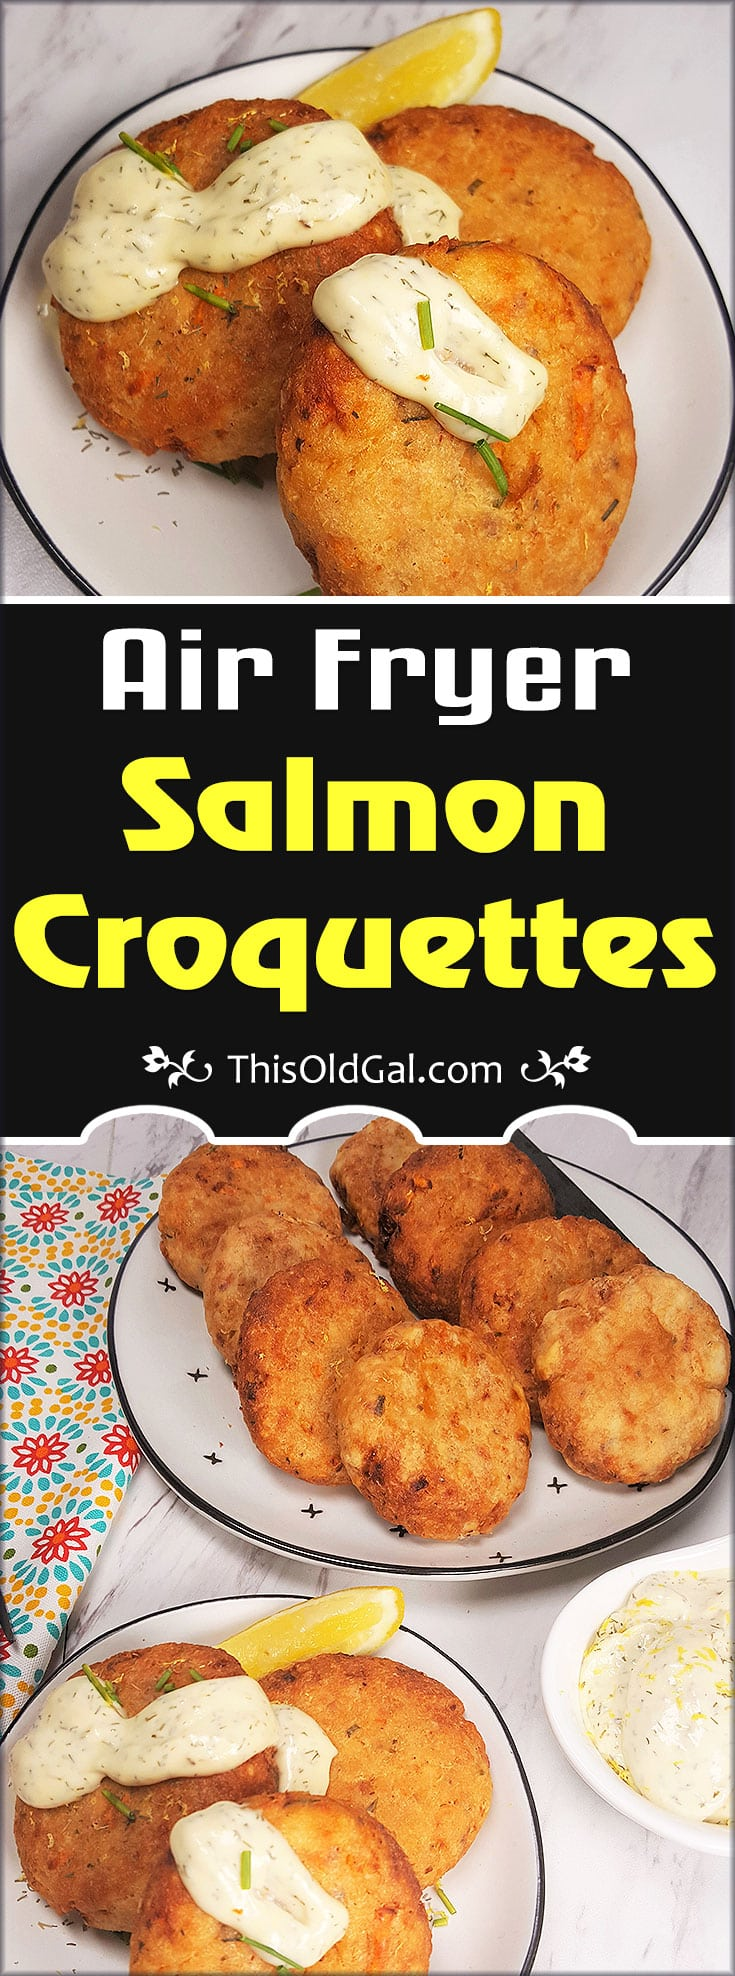 Air Fryer Salmon Croquettes Jewish Mom Style This Old Gal